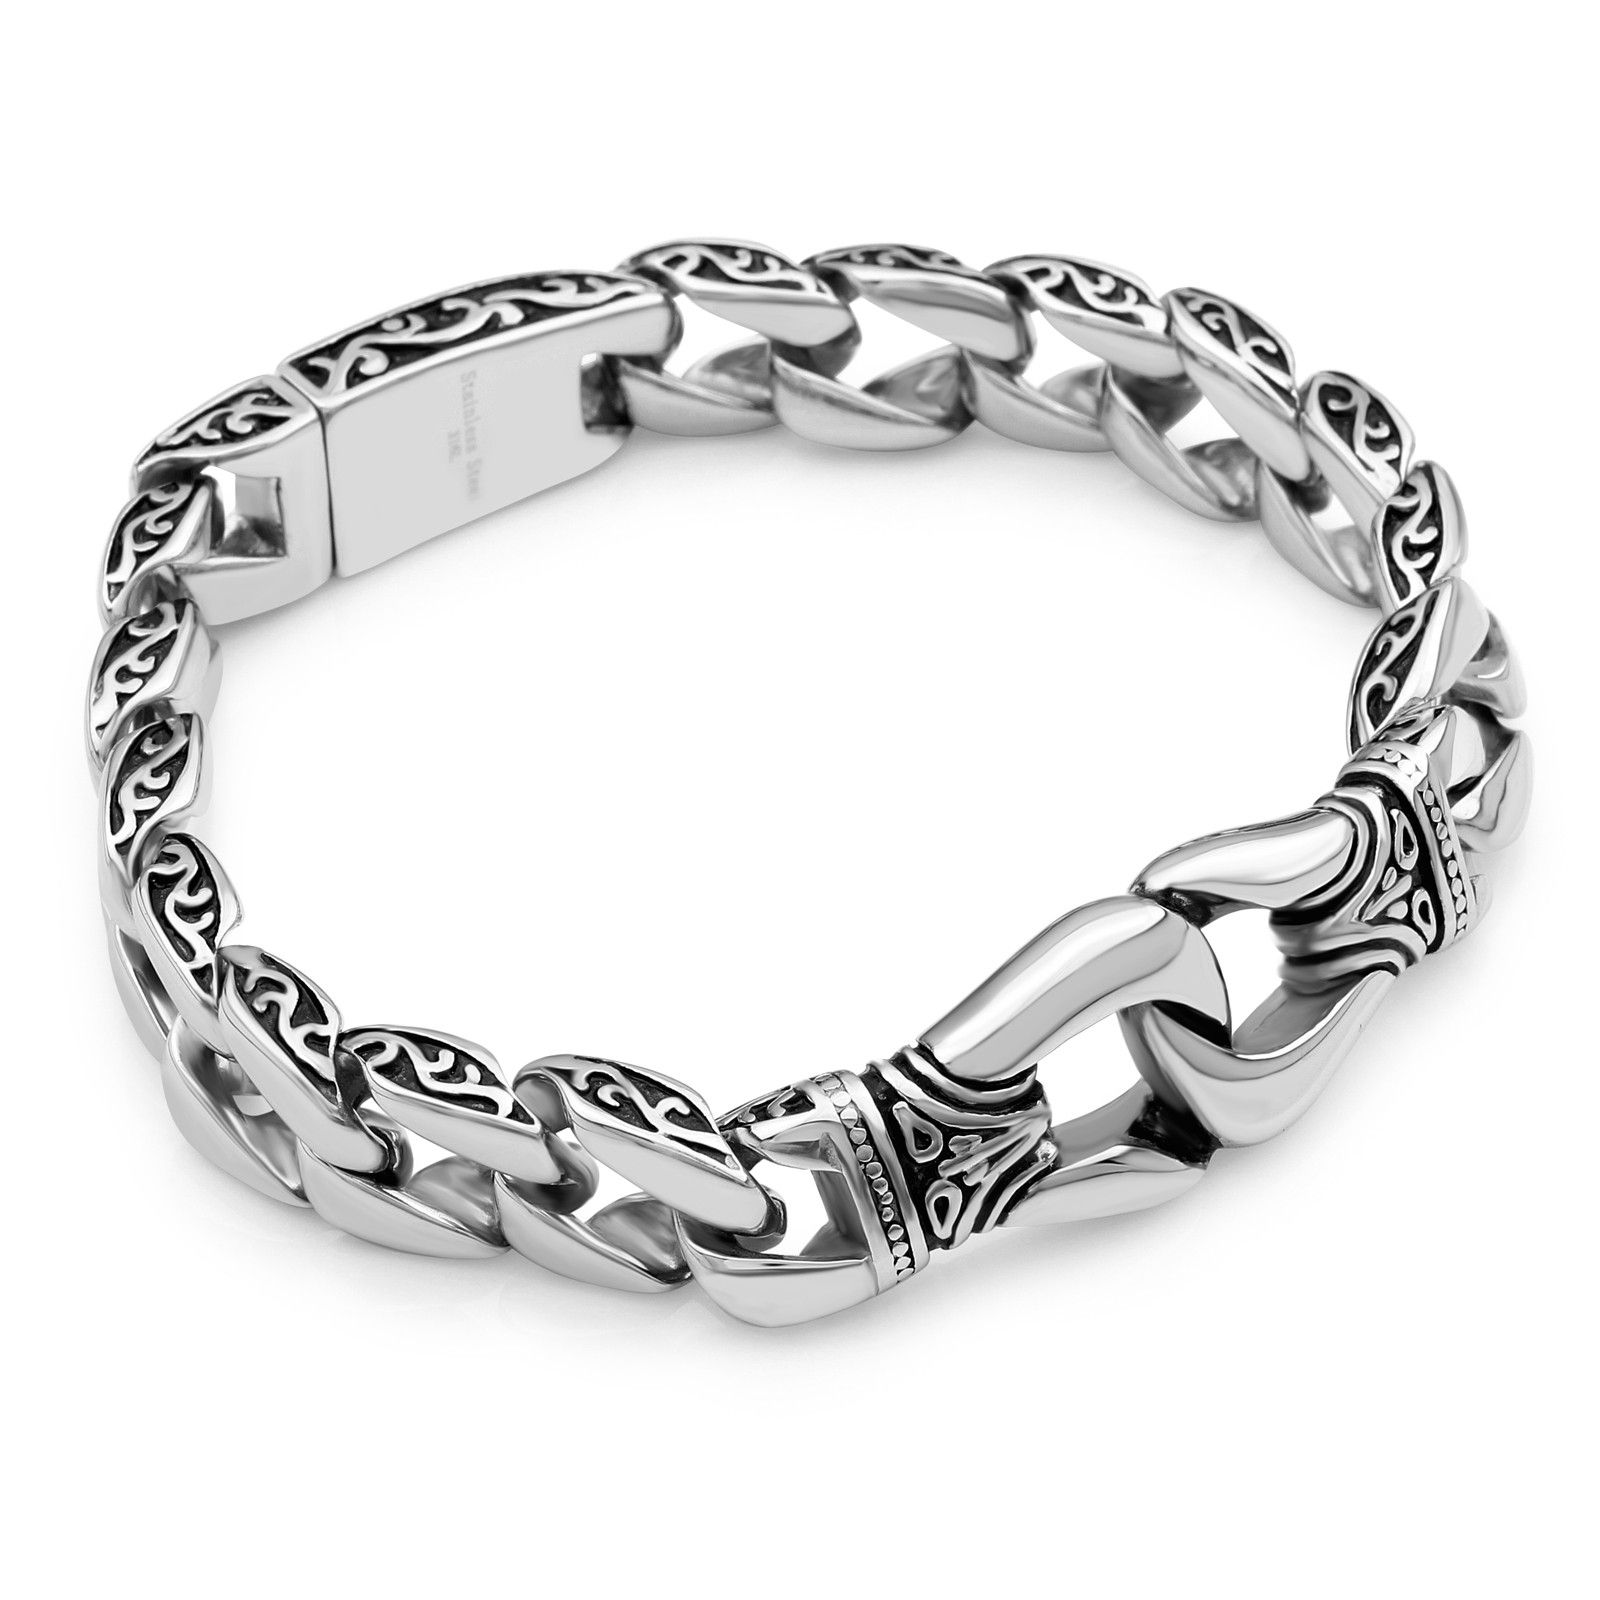 Bracelet high quality l stainless steel silver and black